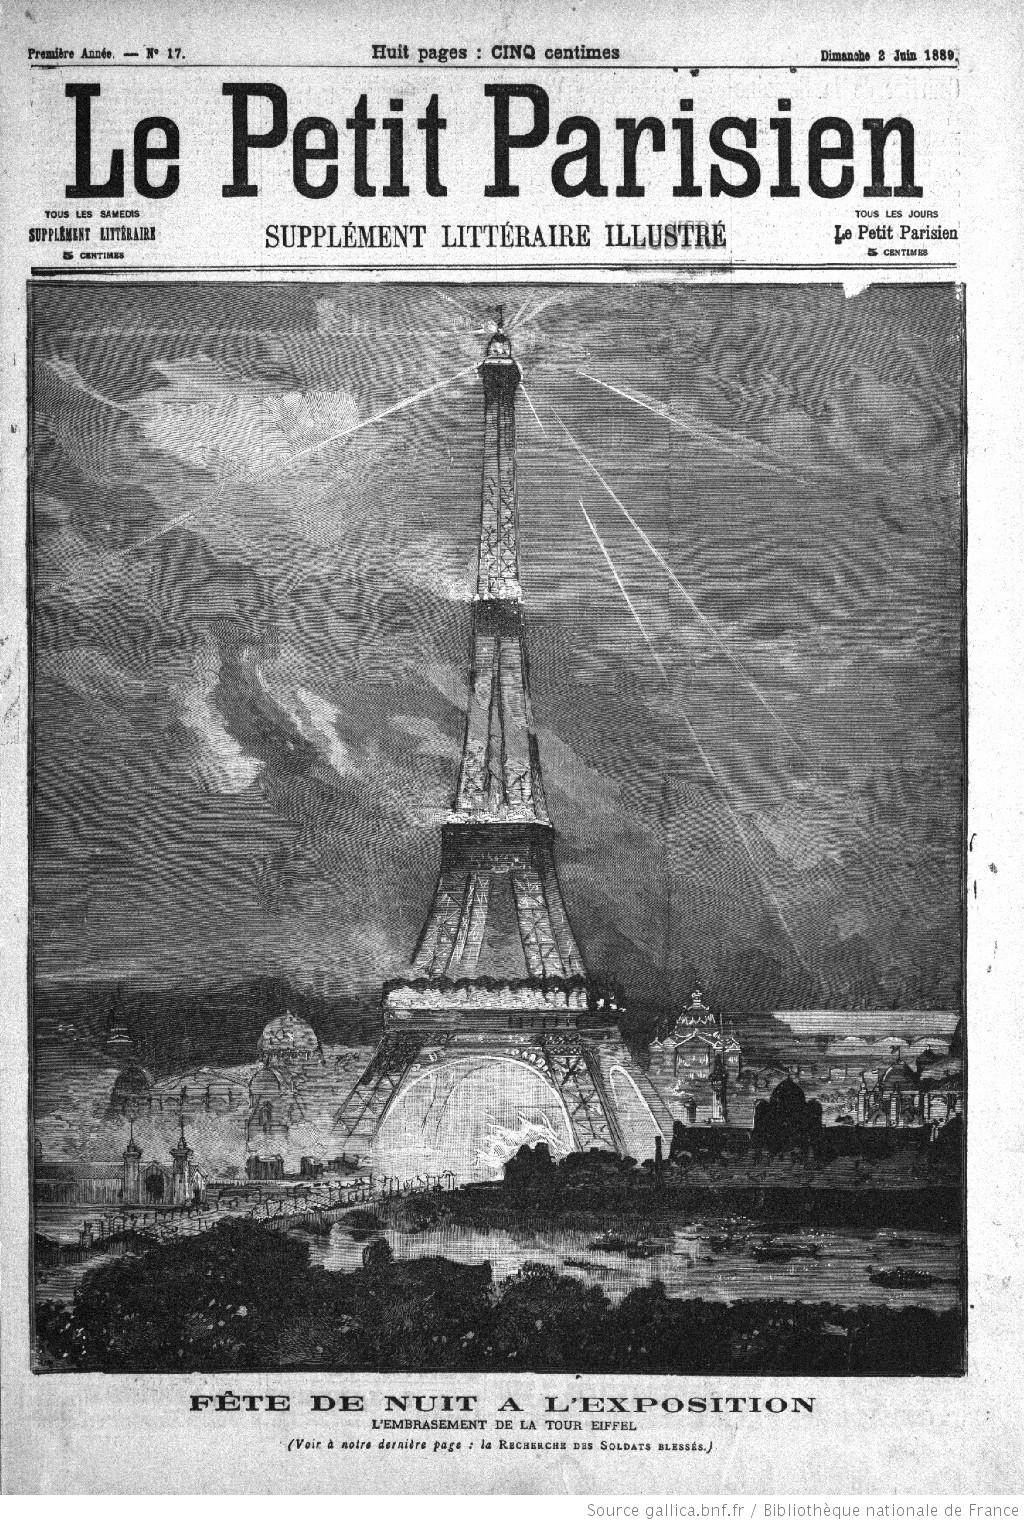 Drawing of the Eiffel Tower in an 1889 edition of Le Petit Parisien newspaper